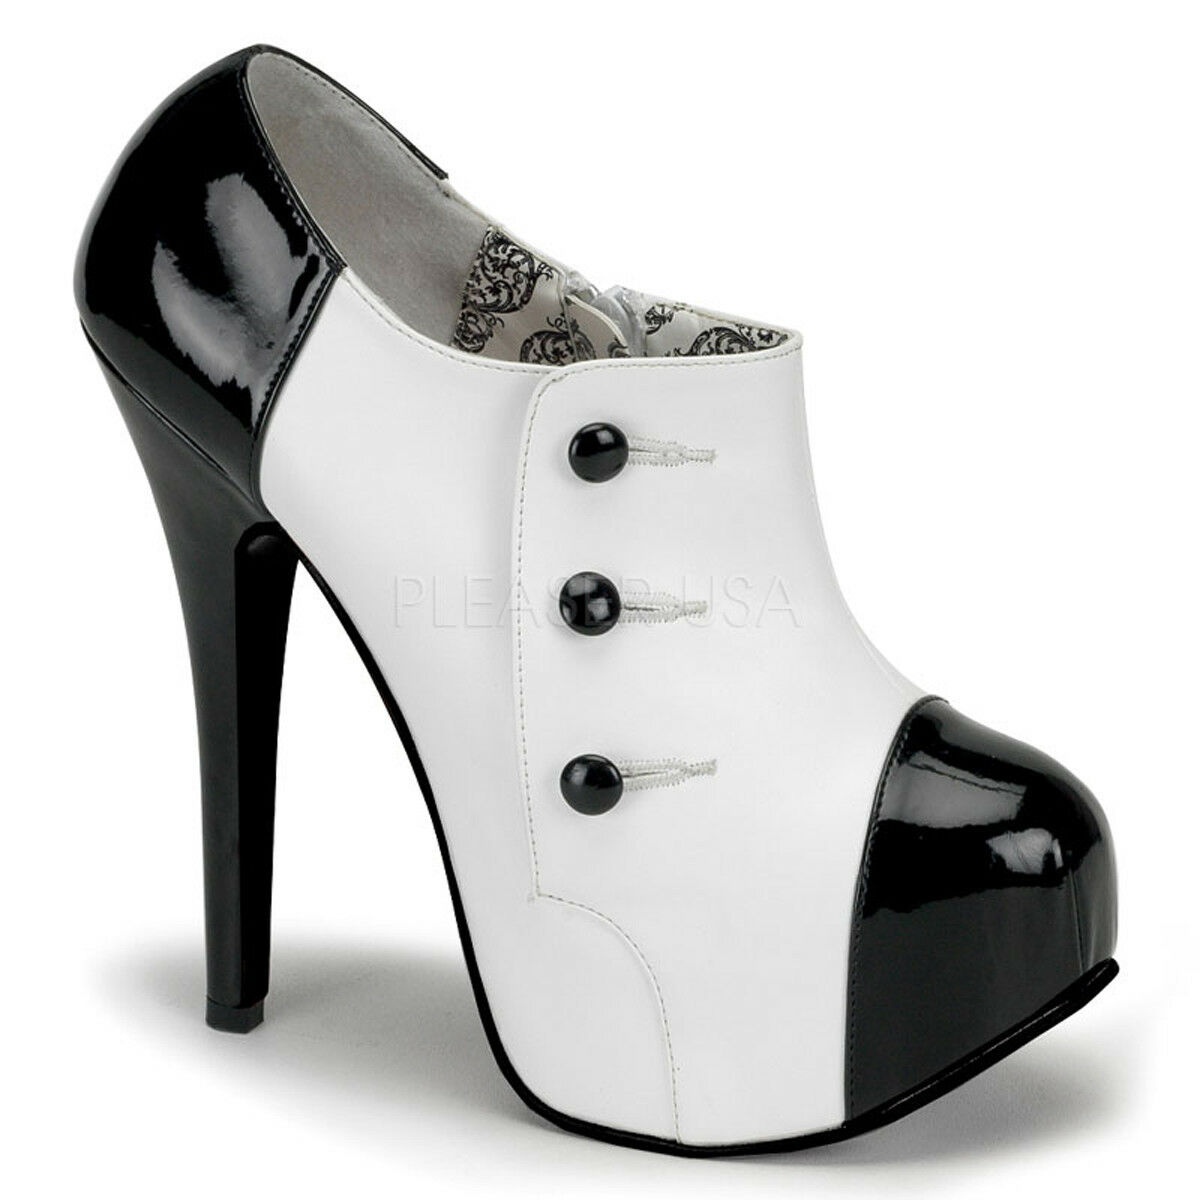 Bordello TEEZE-20 Shoes White Pu-Black Patent Platforms Buttons Spats Ankle Boot